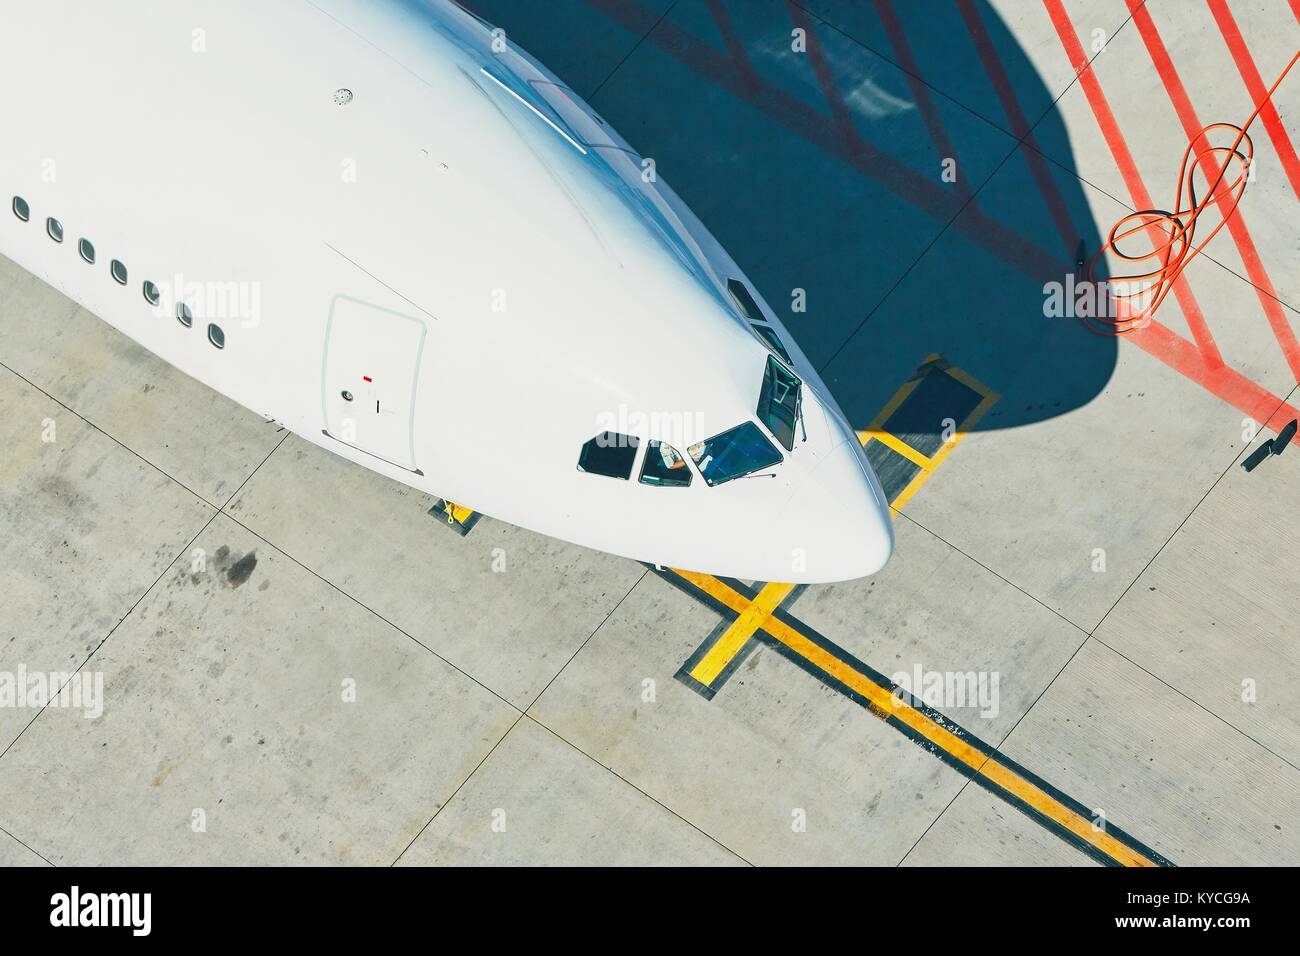 Aerial view of the airport. Airplane is preparation before take off. - Stock Image